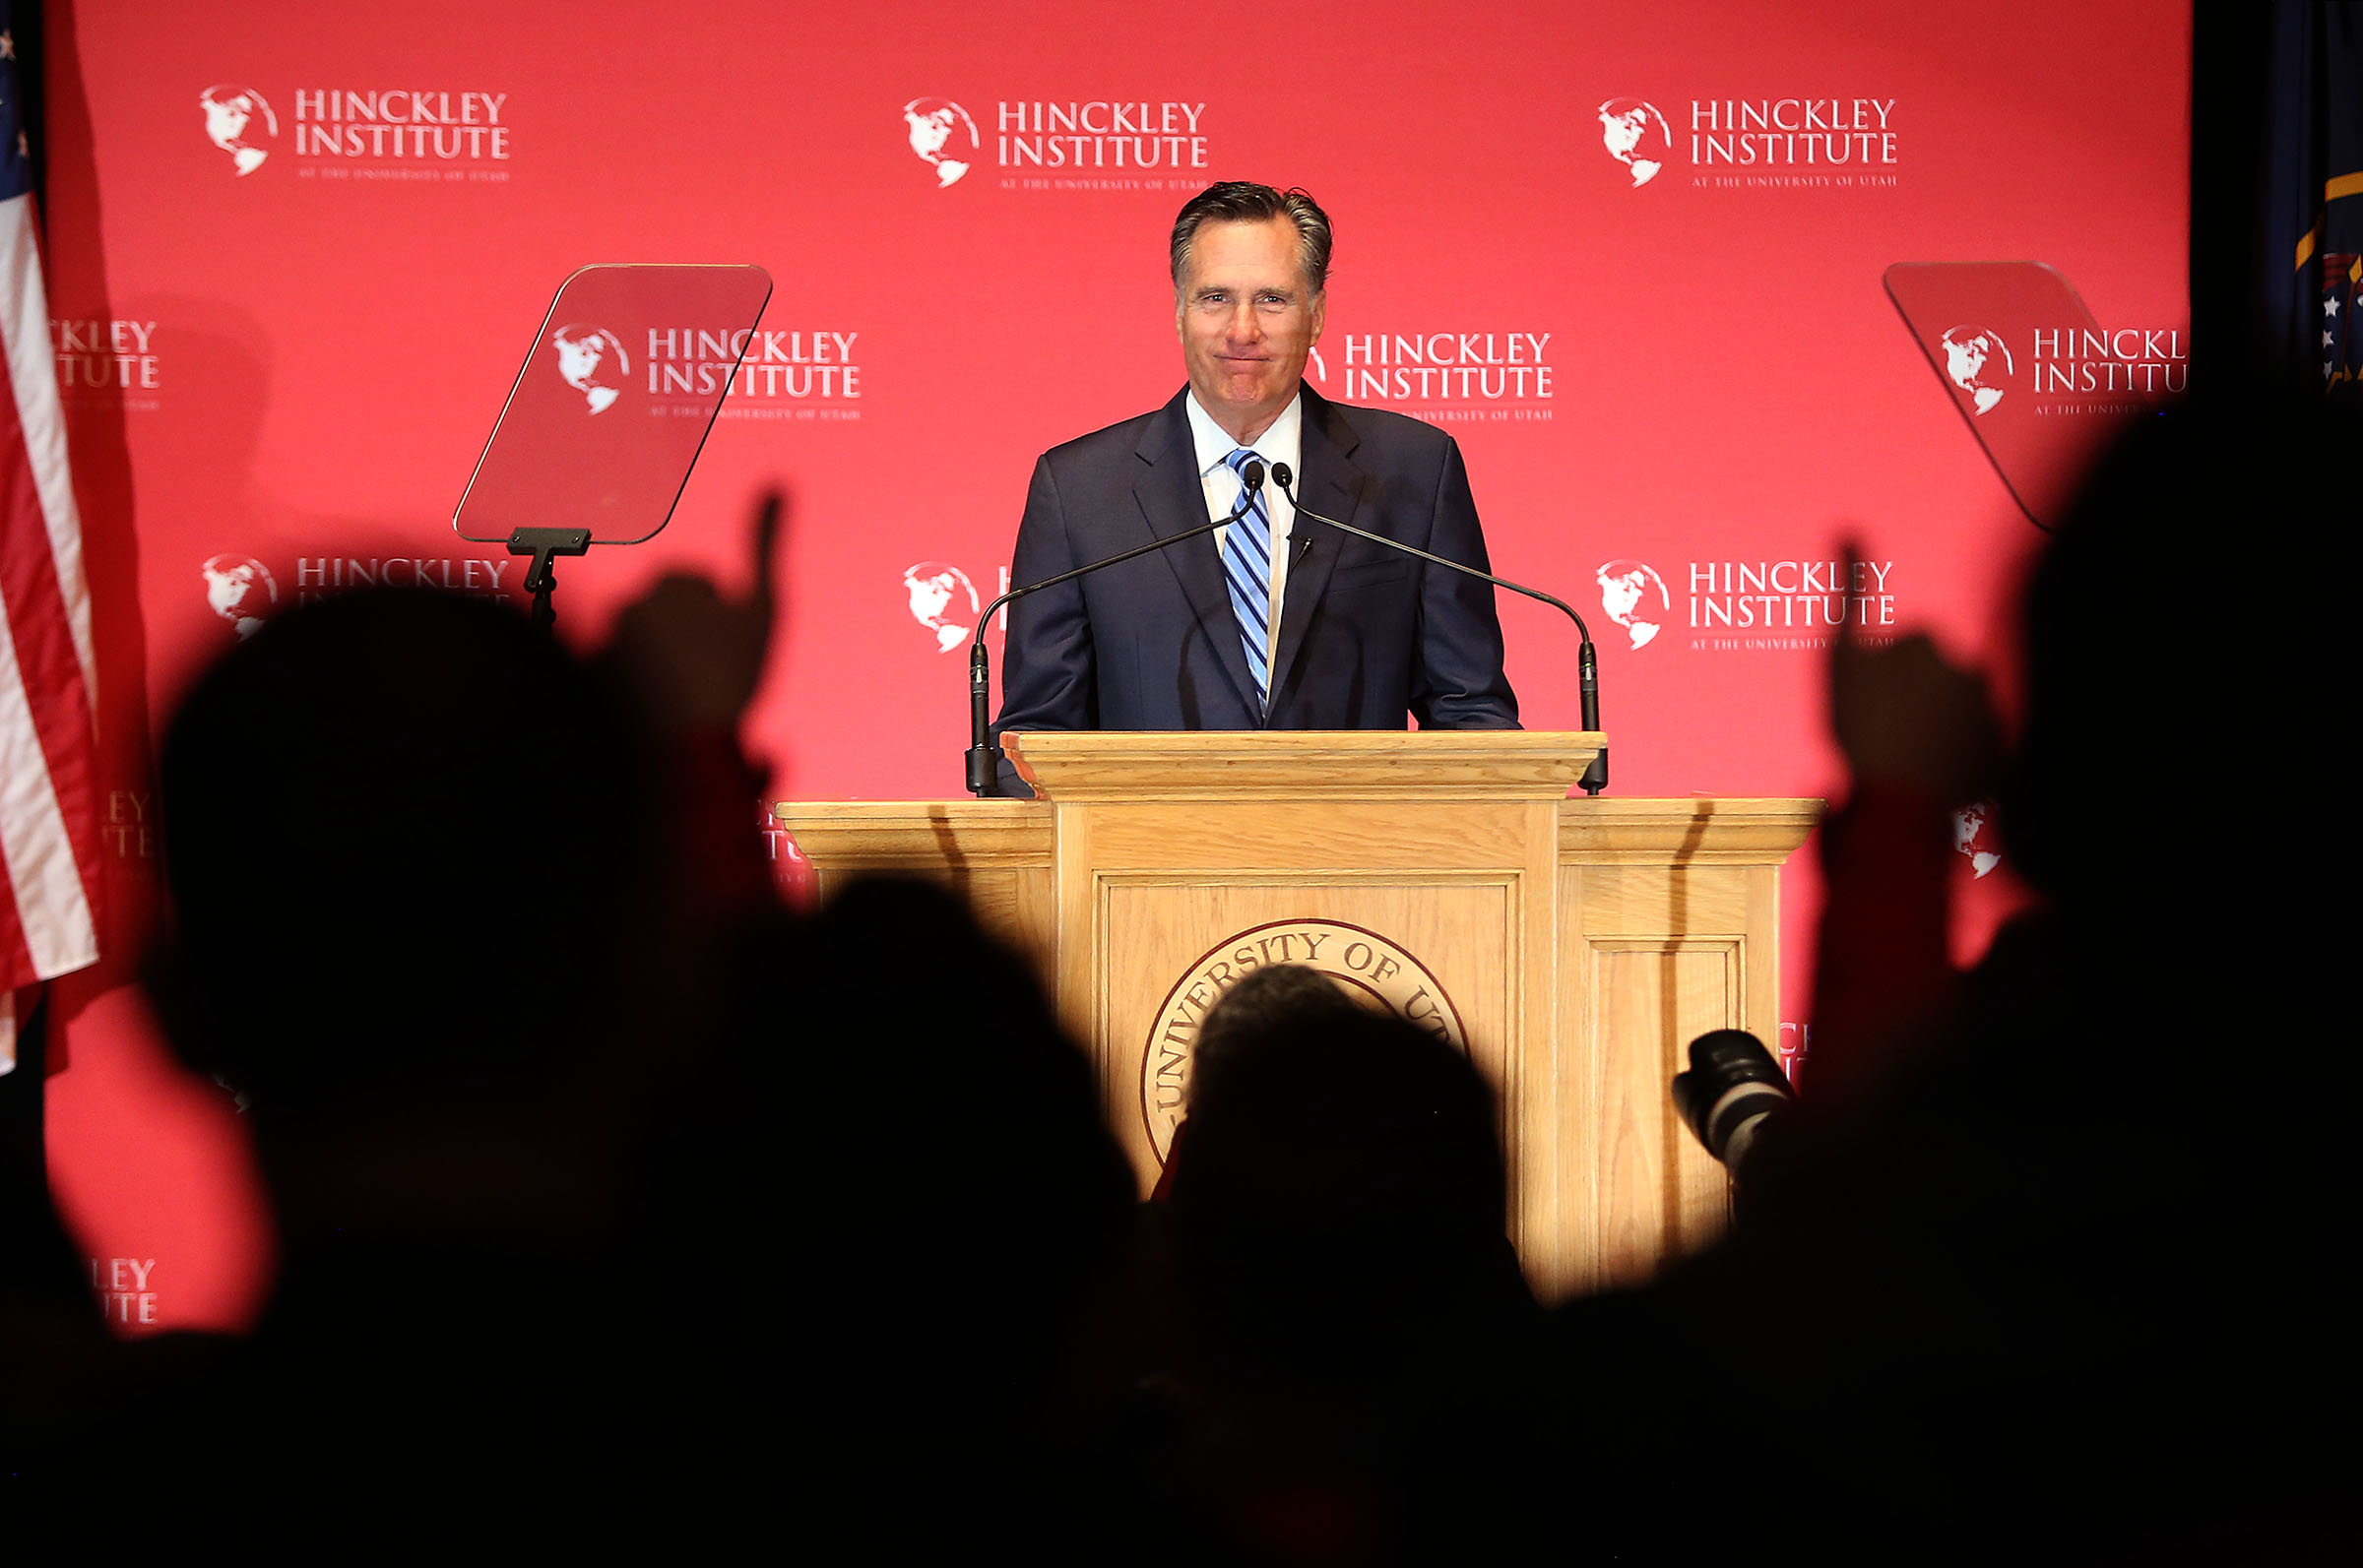 In this March 3, 2016 file photo, Mitt Romney addresses the Hinckley Institute of Politics regarding the 2016 presidential race at the University of Utah in Salt Lake City.